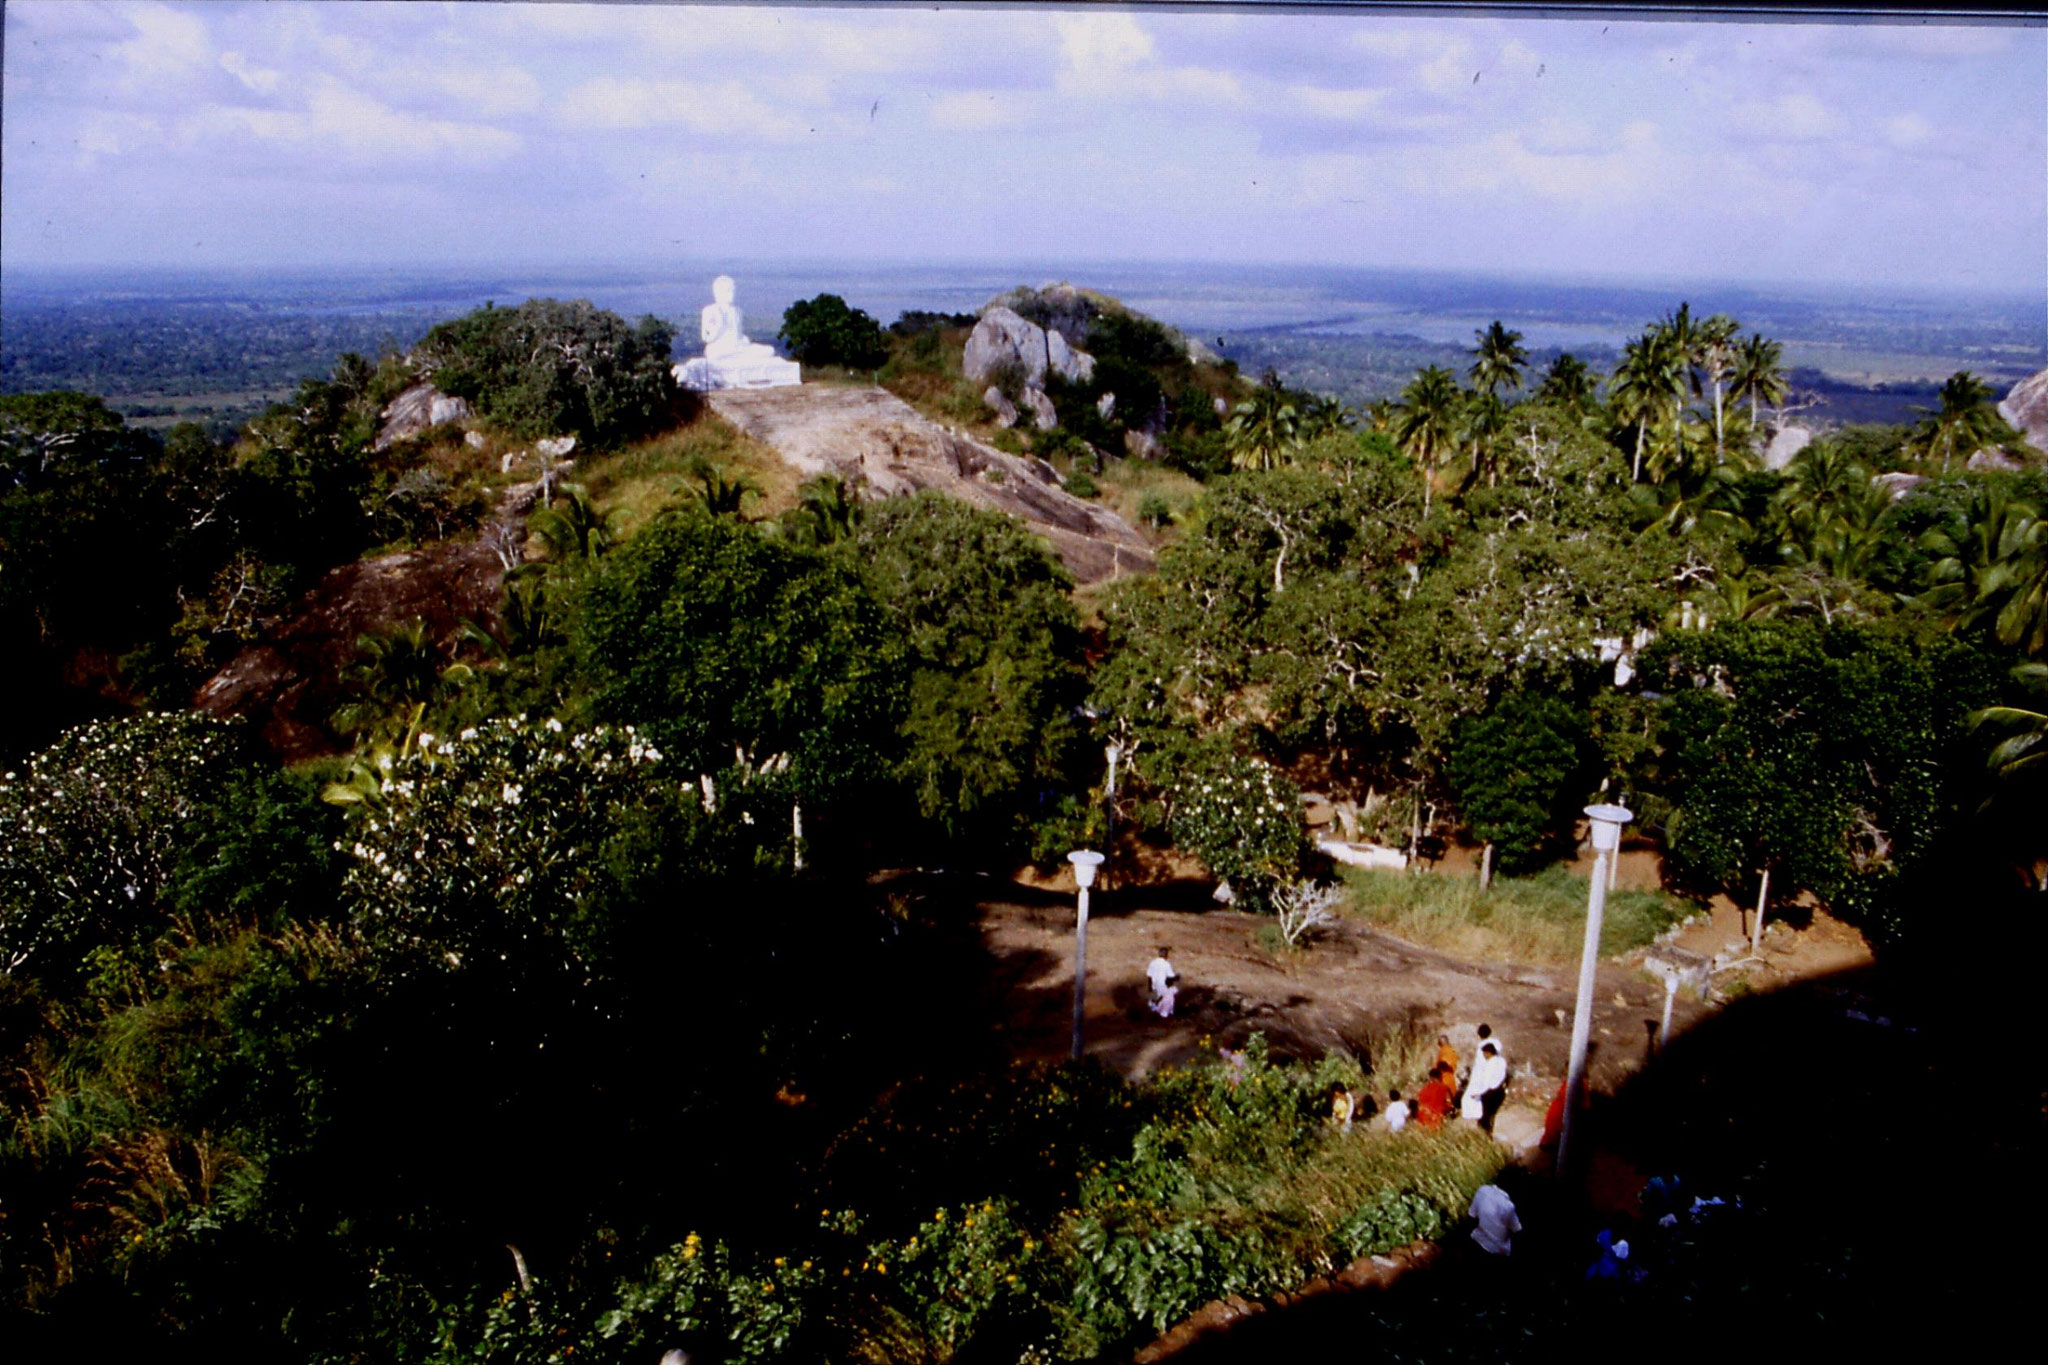 103/4: 8/2/1990 Buddha statue and monks with water behind at Mihintale